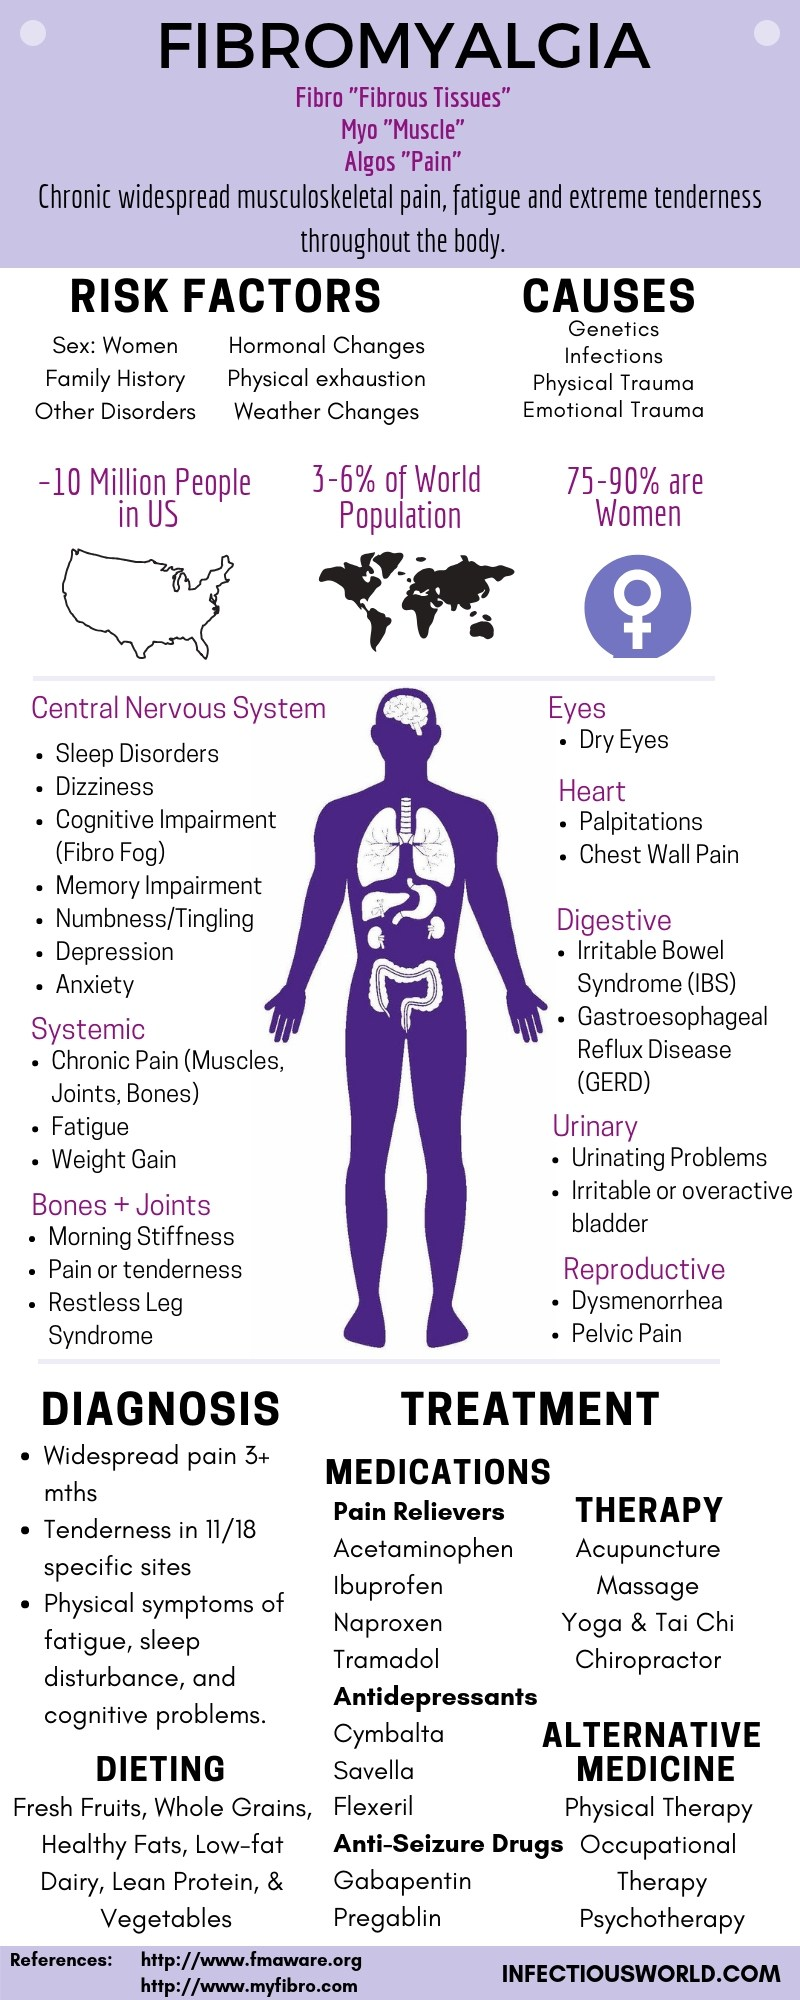 All about Fibromyalgia